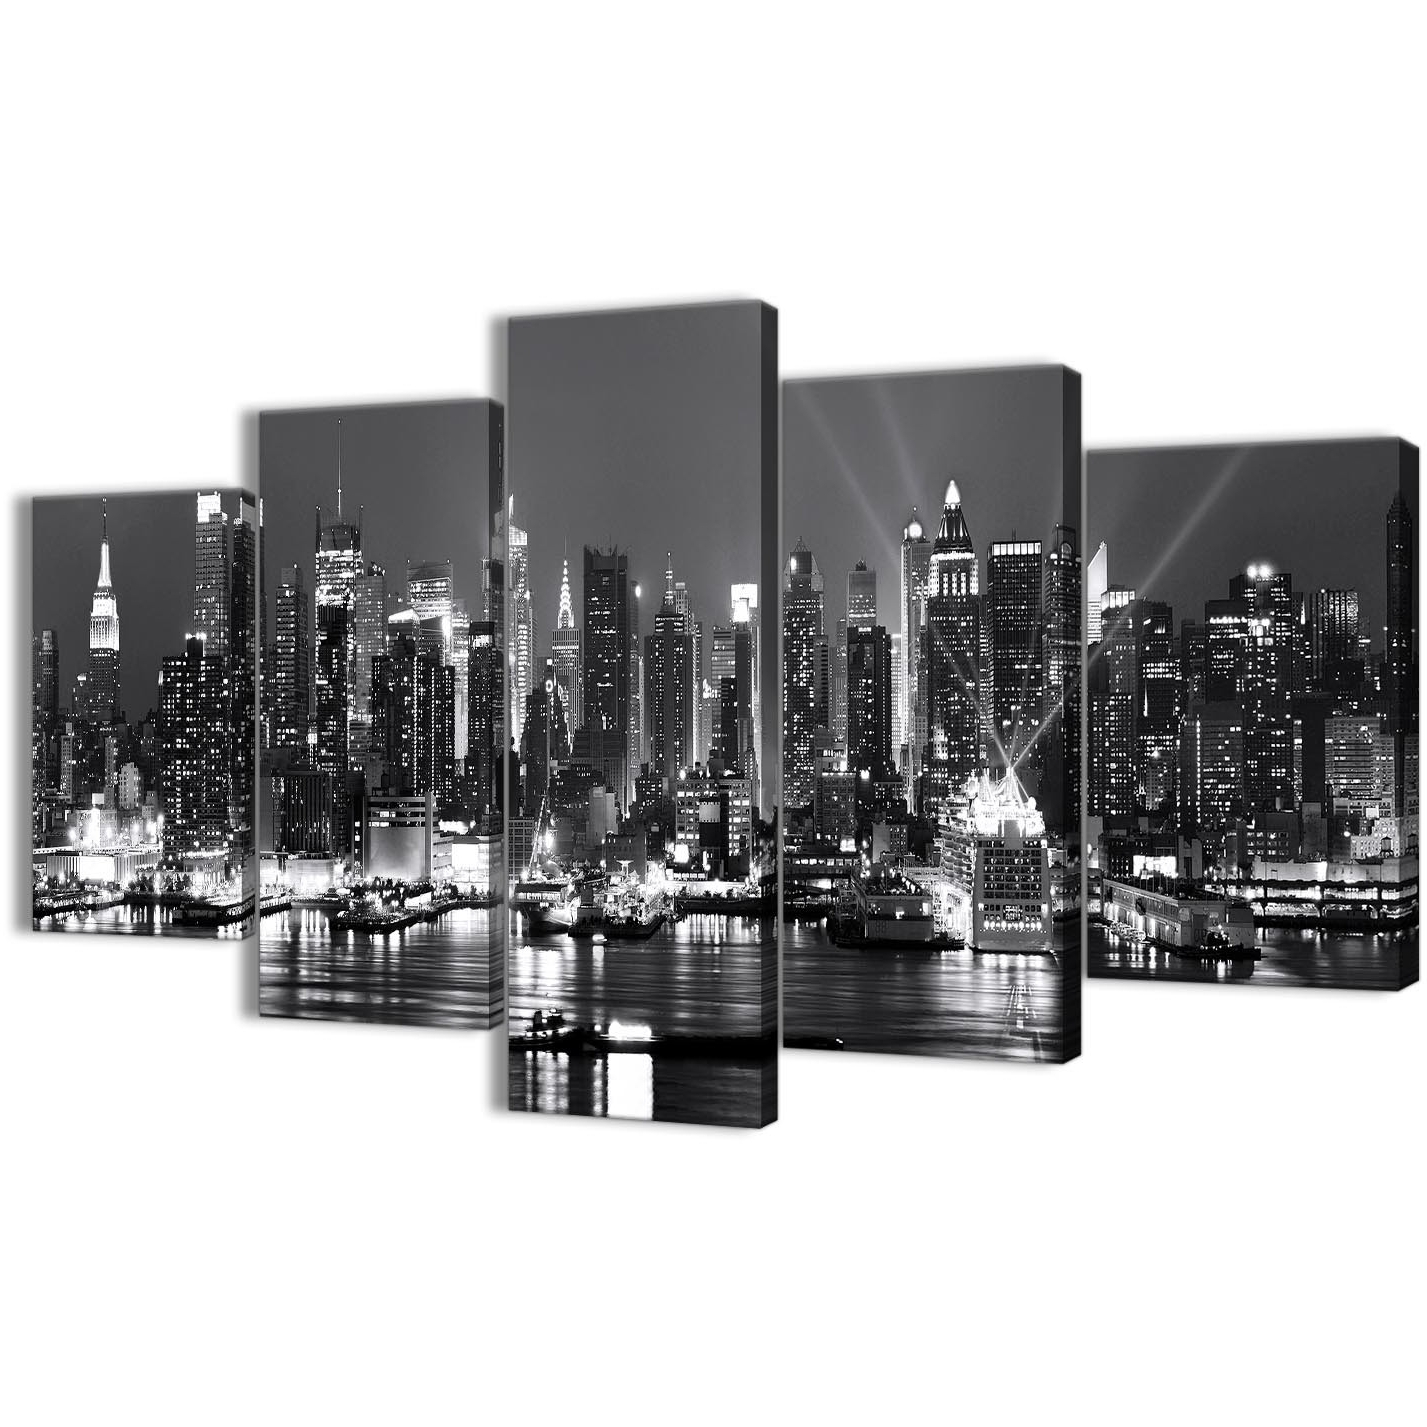 5 Panel Landscape Canvas Wall Art Prints – New York Hudson River Throughout Newest New York Wall Art (View 16 of 20)